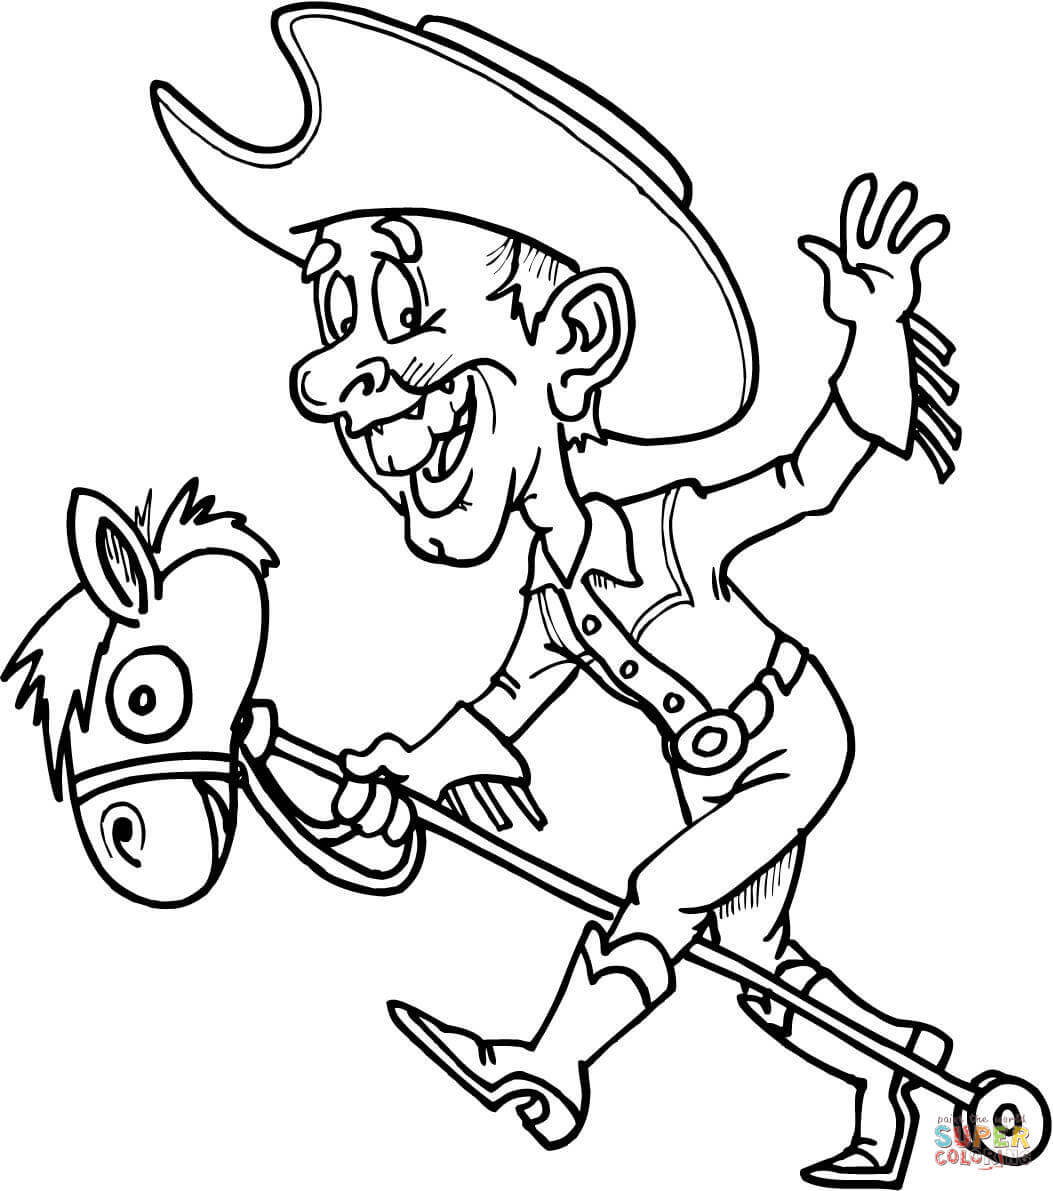 Western Theme Coloring Pages at GetDrawings.com | Free for ...